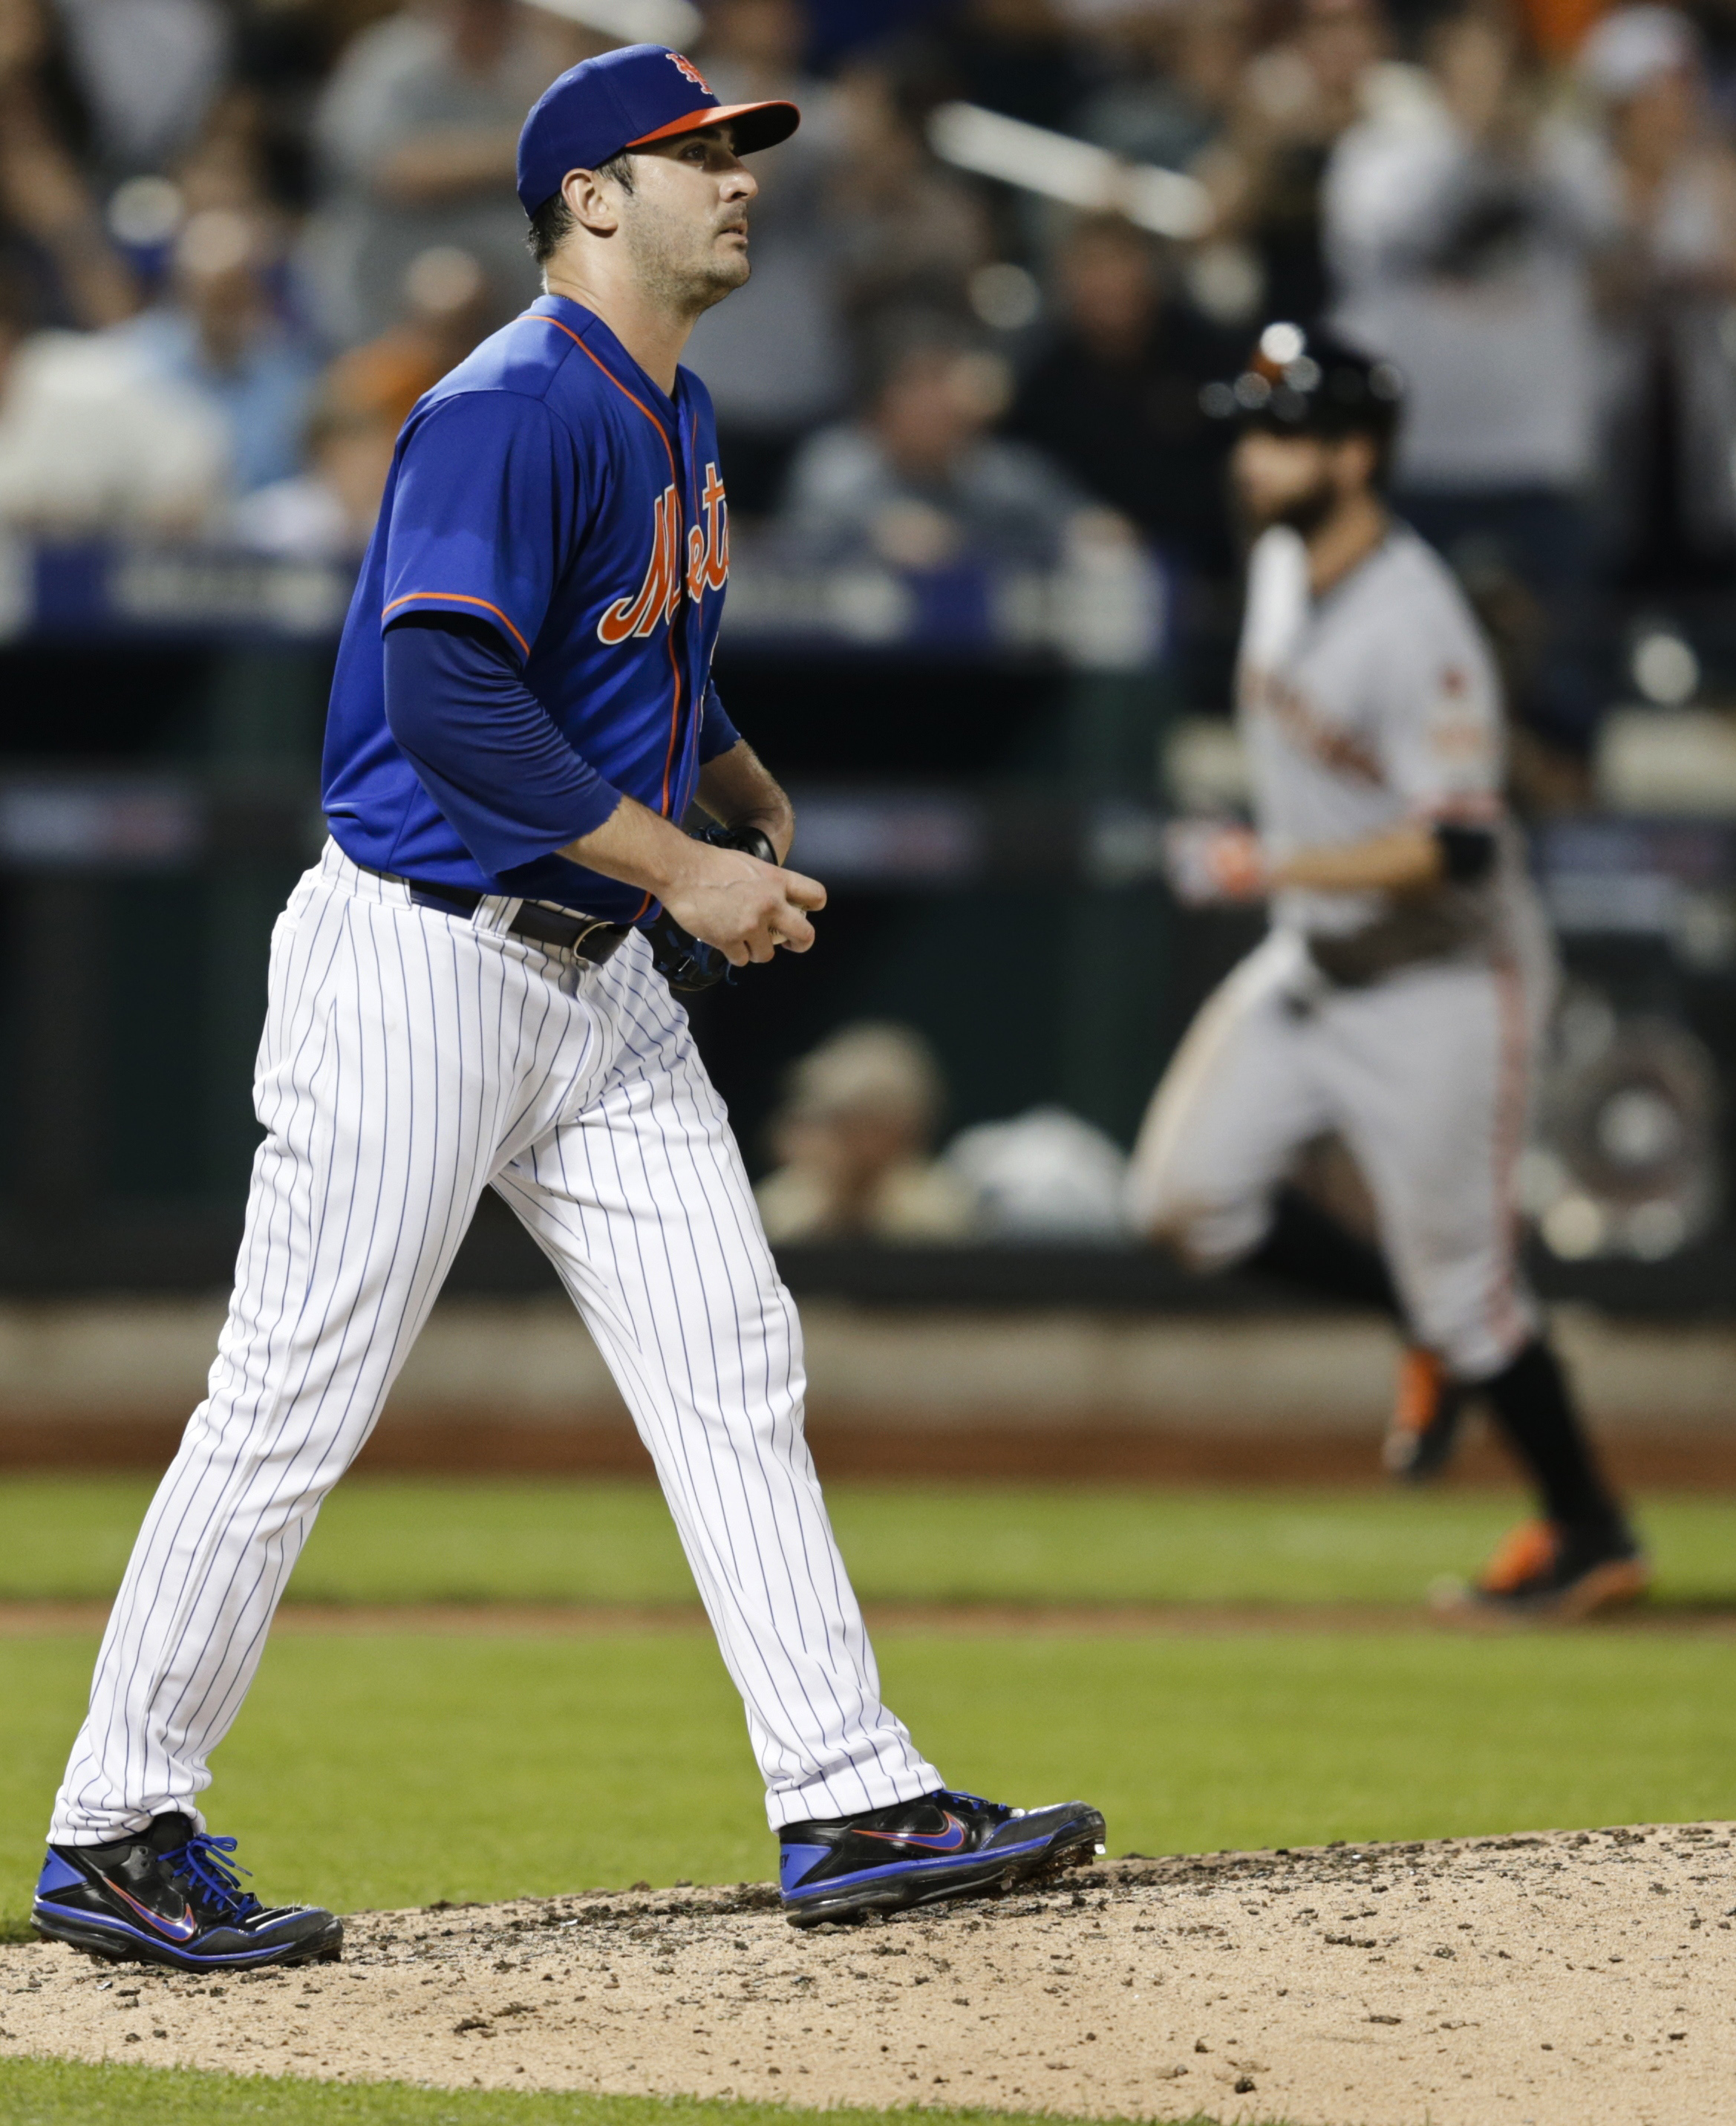 New York Mets starting pitcher Matt Harvey waits as San Francisco Giants' Brandon Belt runs the bases after hitting a two-run home run during the sixth inning of a baseball game Wednesday, June 10, 2015, in New York. (AP Photo/Frank Franklin II)